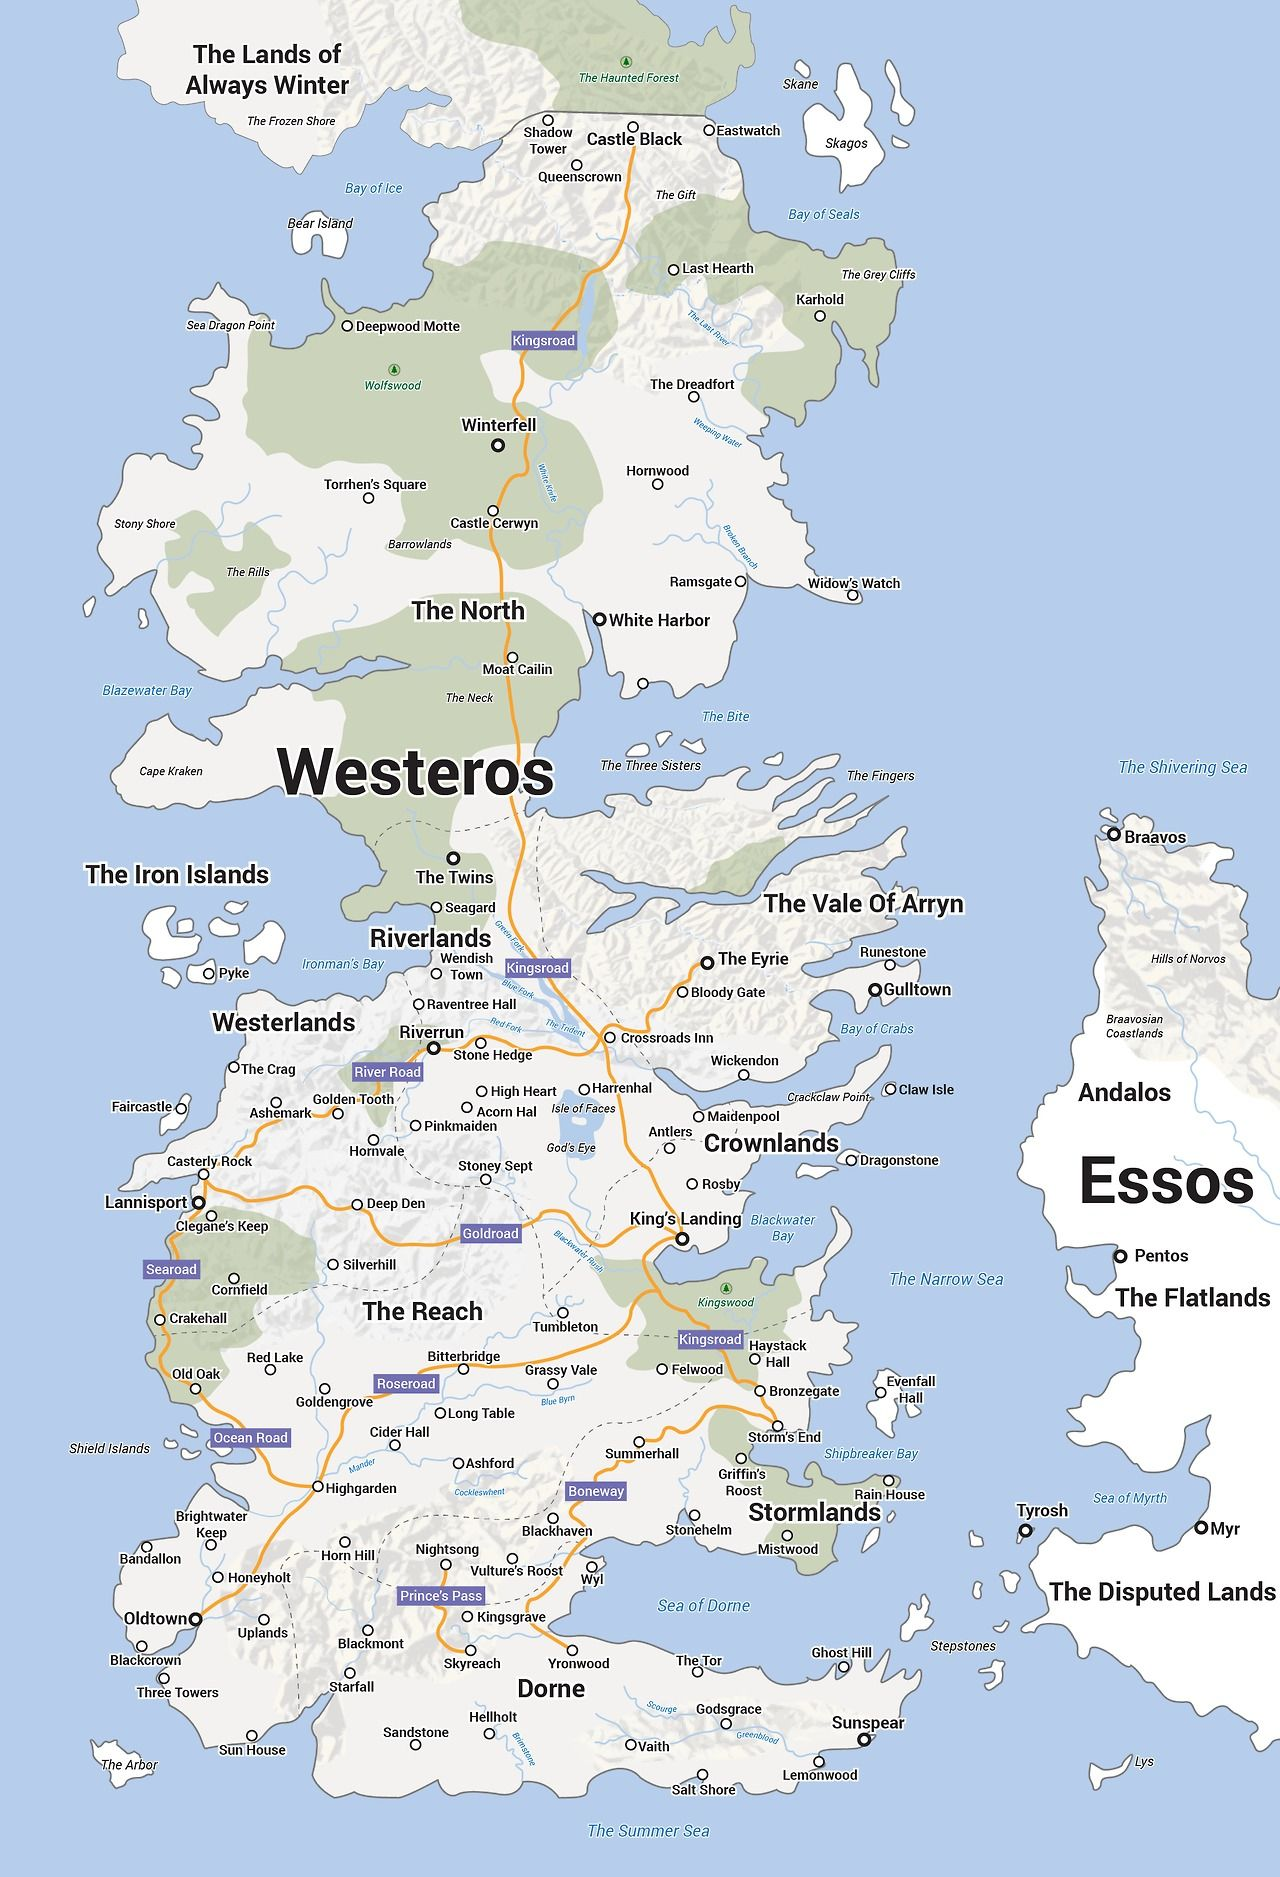 Westeros map from Game of Thrones. Interesting how it is a distorted on